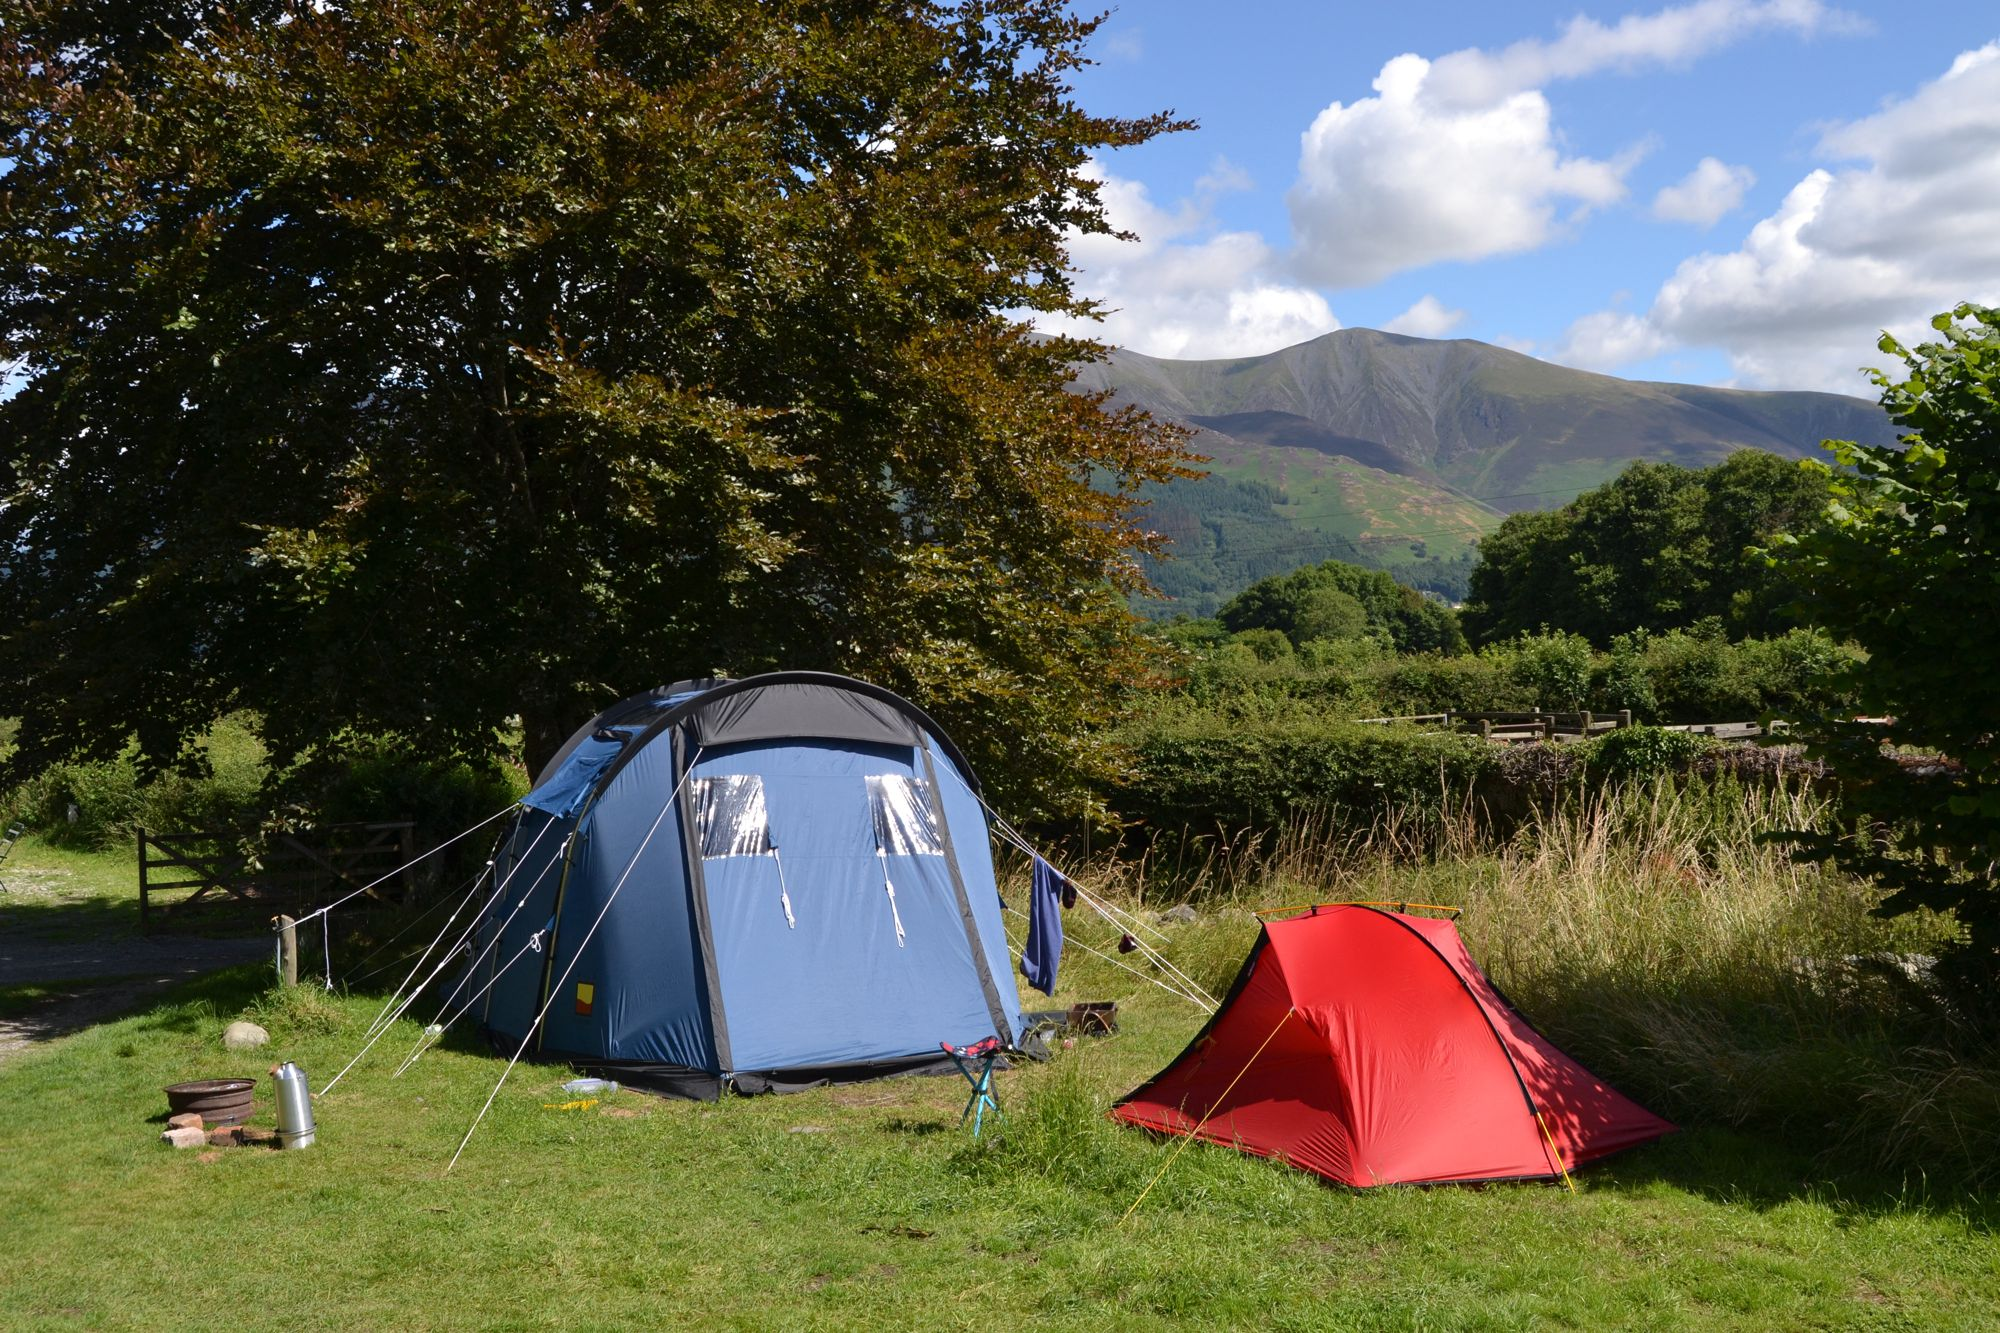 View-tastic camping nestled in the stunning Cumbrian valleys.